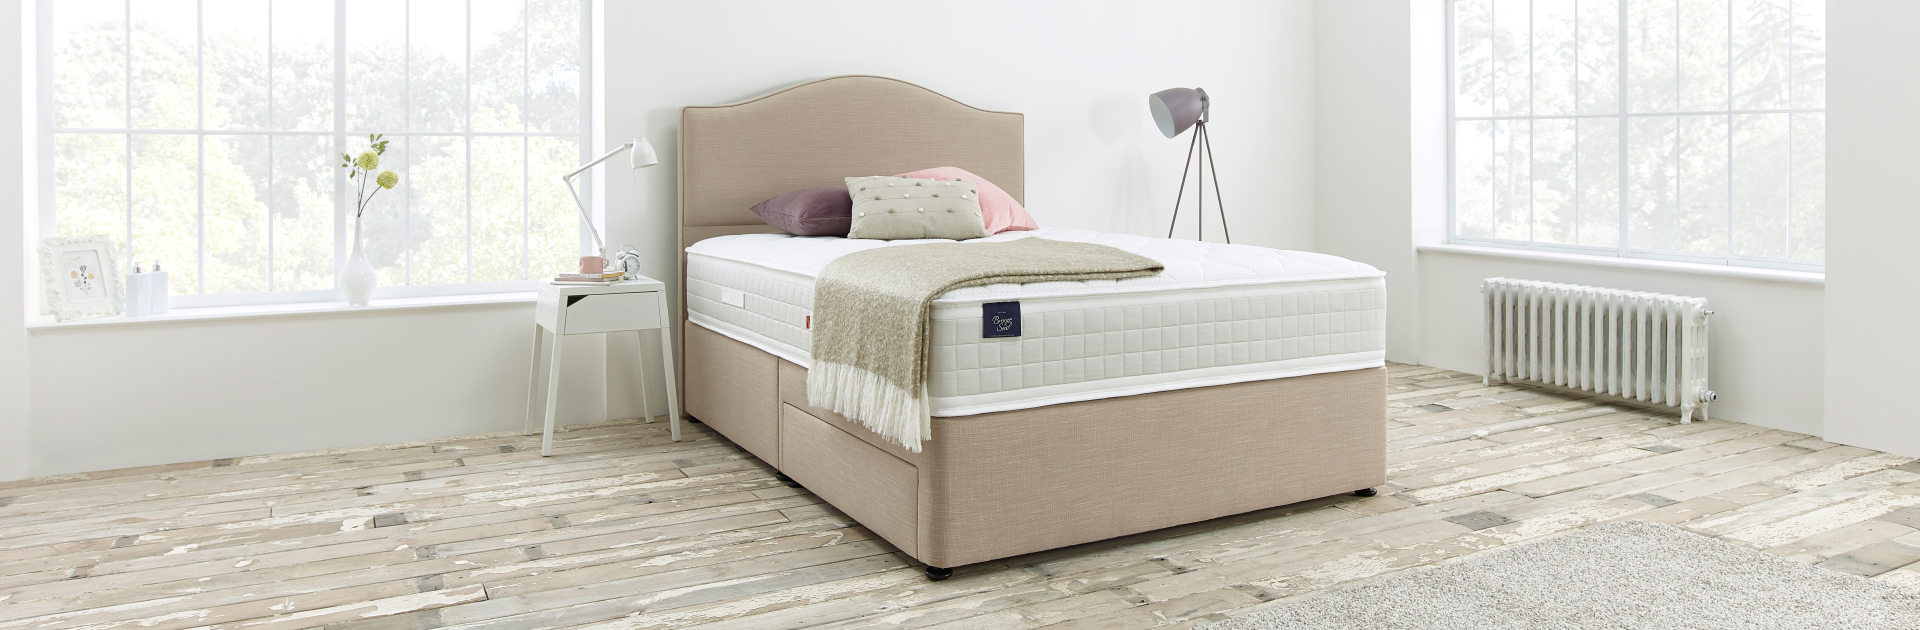 Slumberland Bronze Seal Bed by Nigel Byrom's.jpg